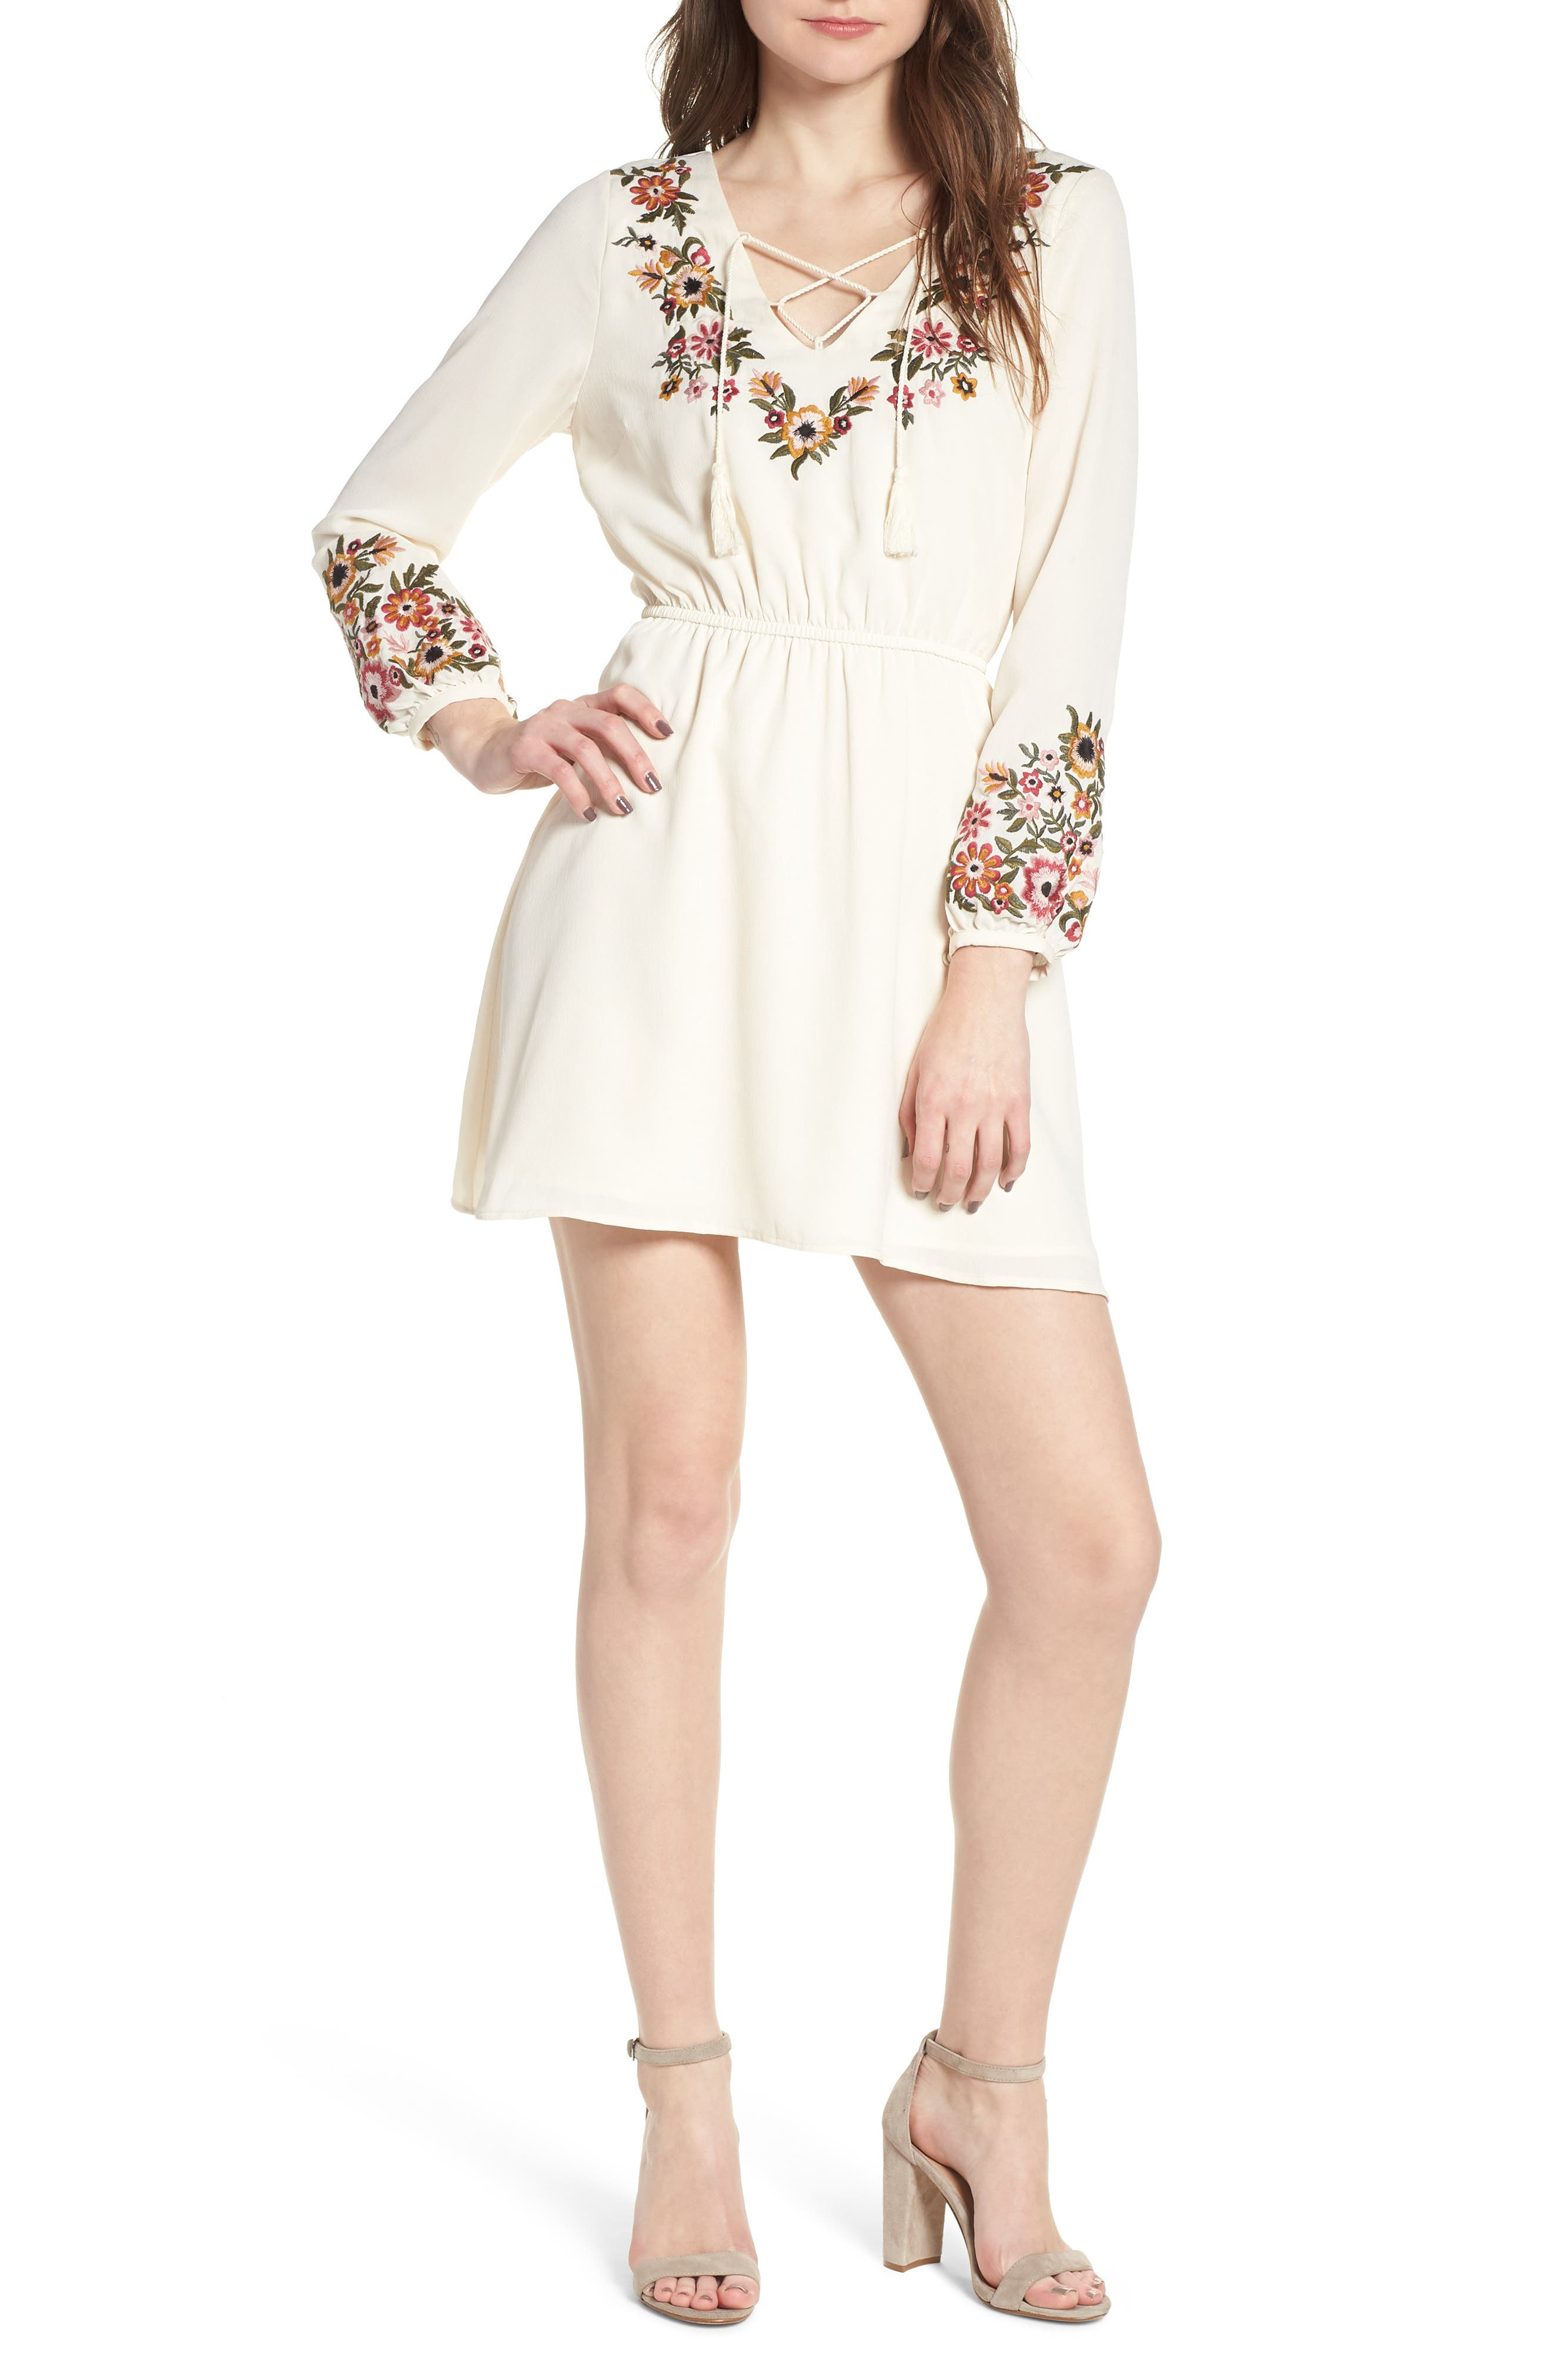 Garrison Embroidered Minidress,                             Main thumbnail 1, color,                             Ivory